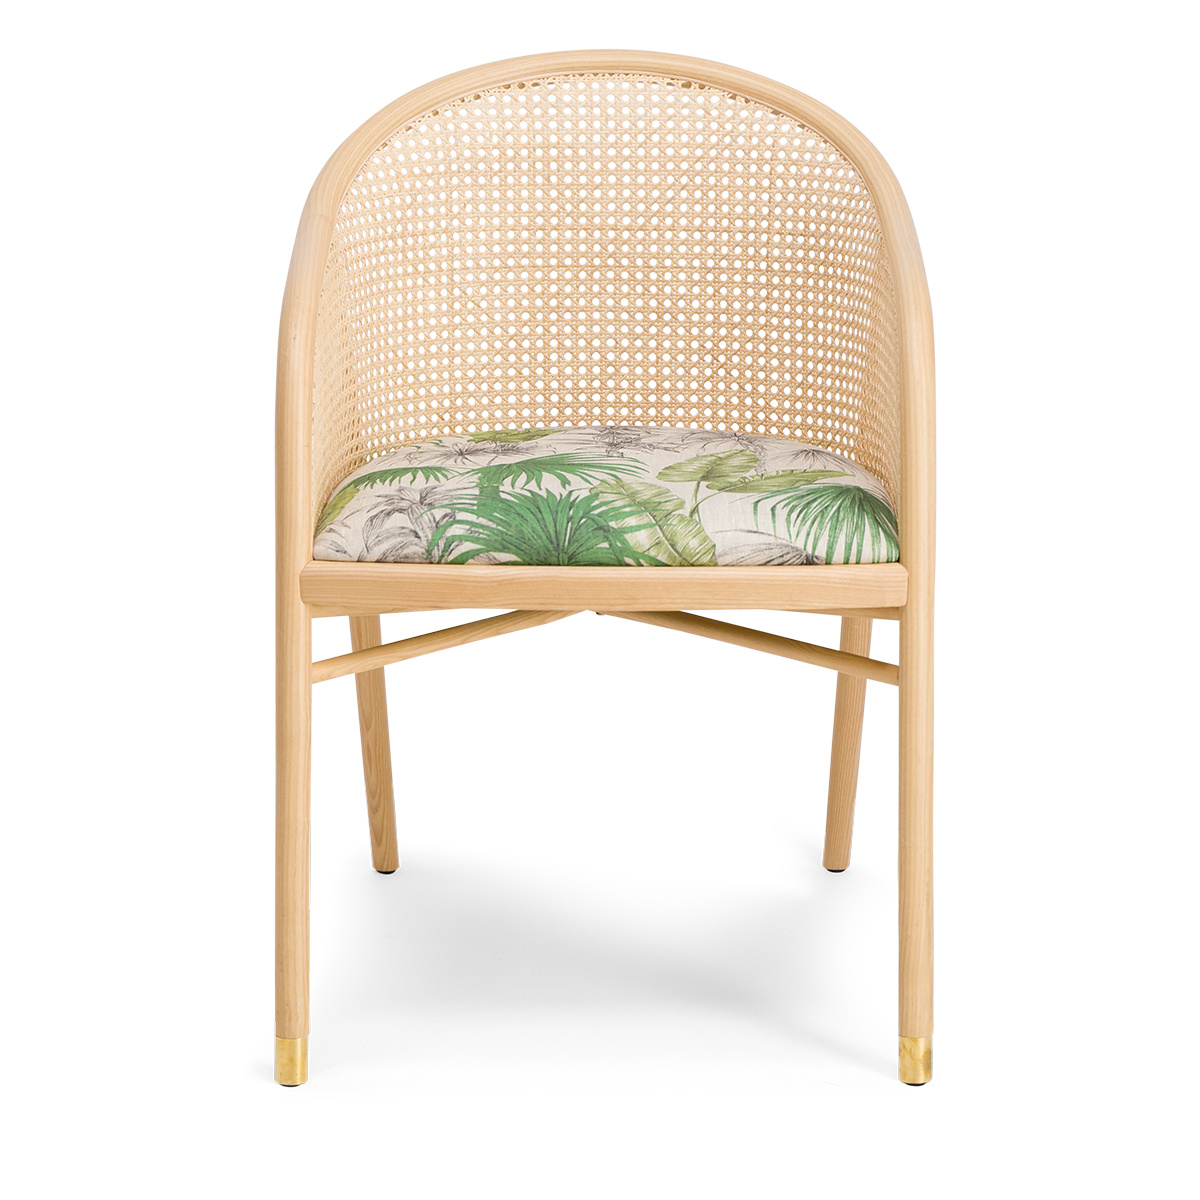 Cavallo Armchair, Banana Tree Print with Natural Frame